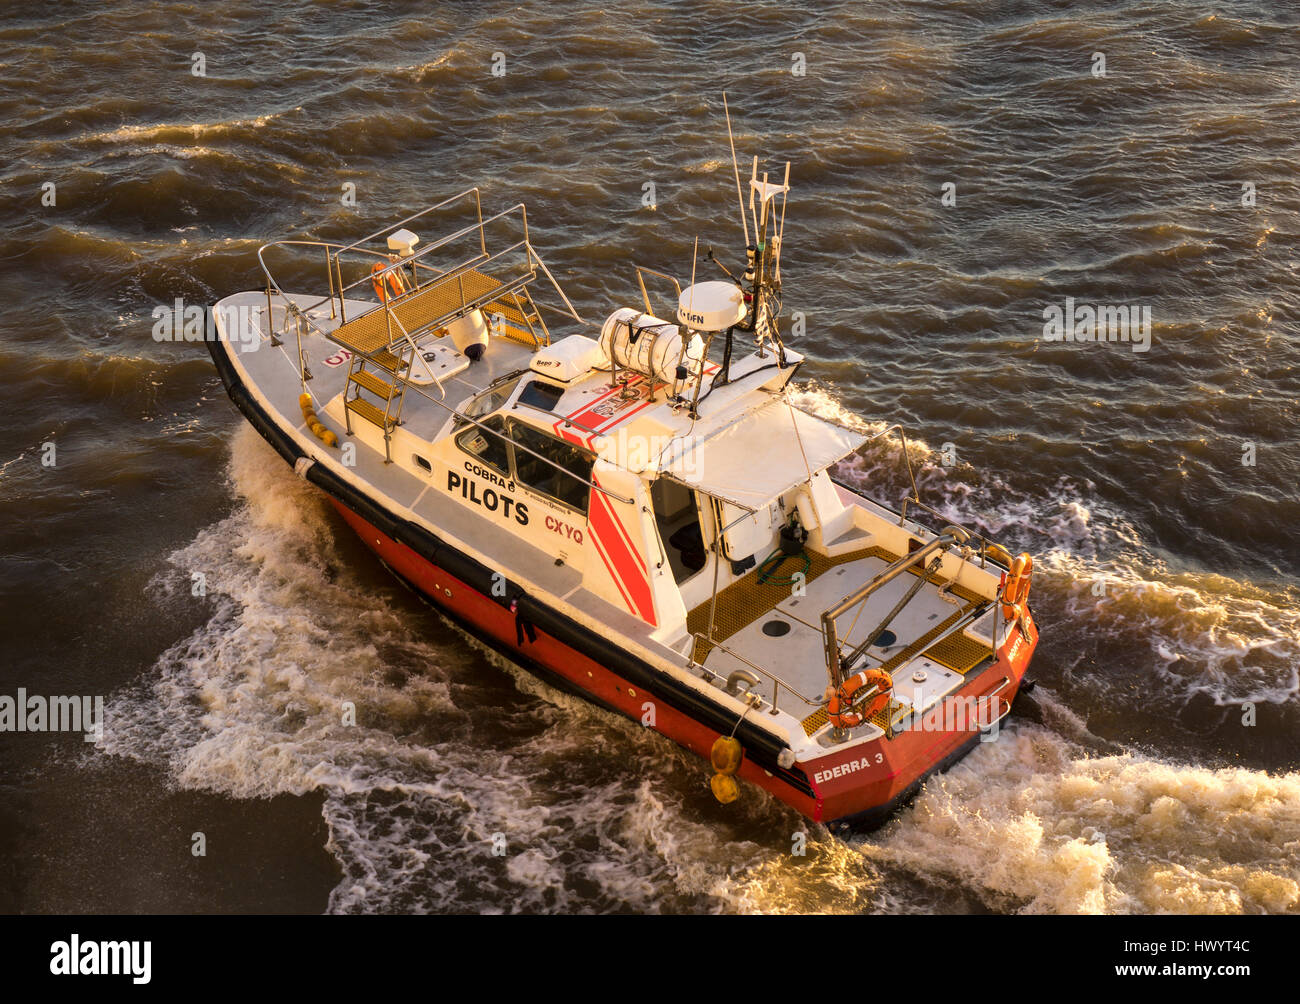 Pilot boat, comes to ship to collect pilot, Montevideo, Uruguay Stock Photo